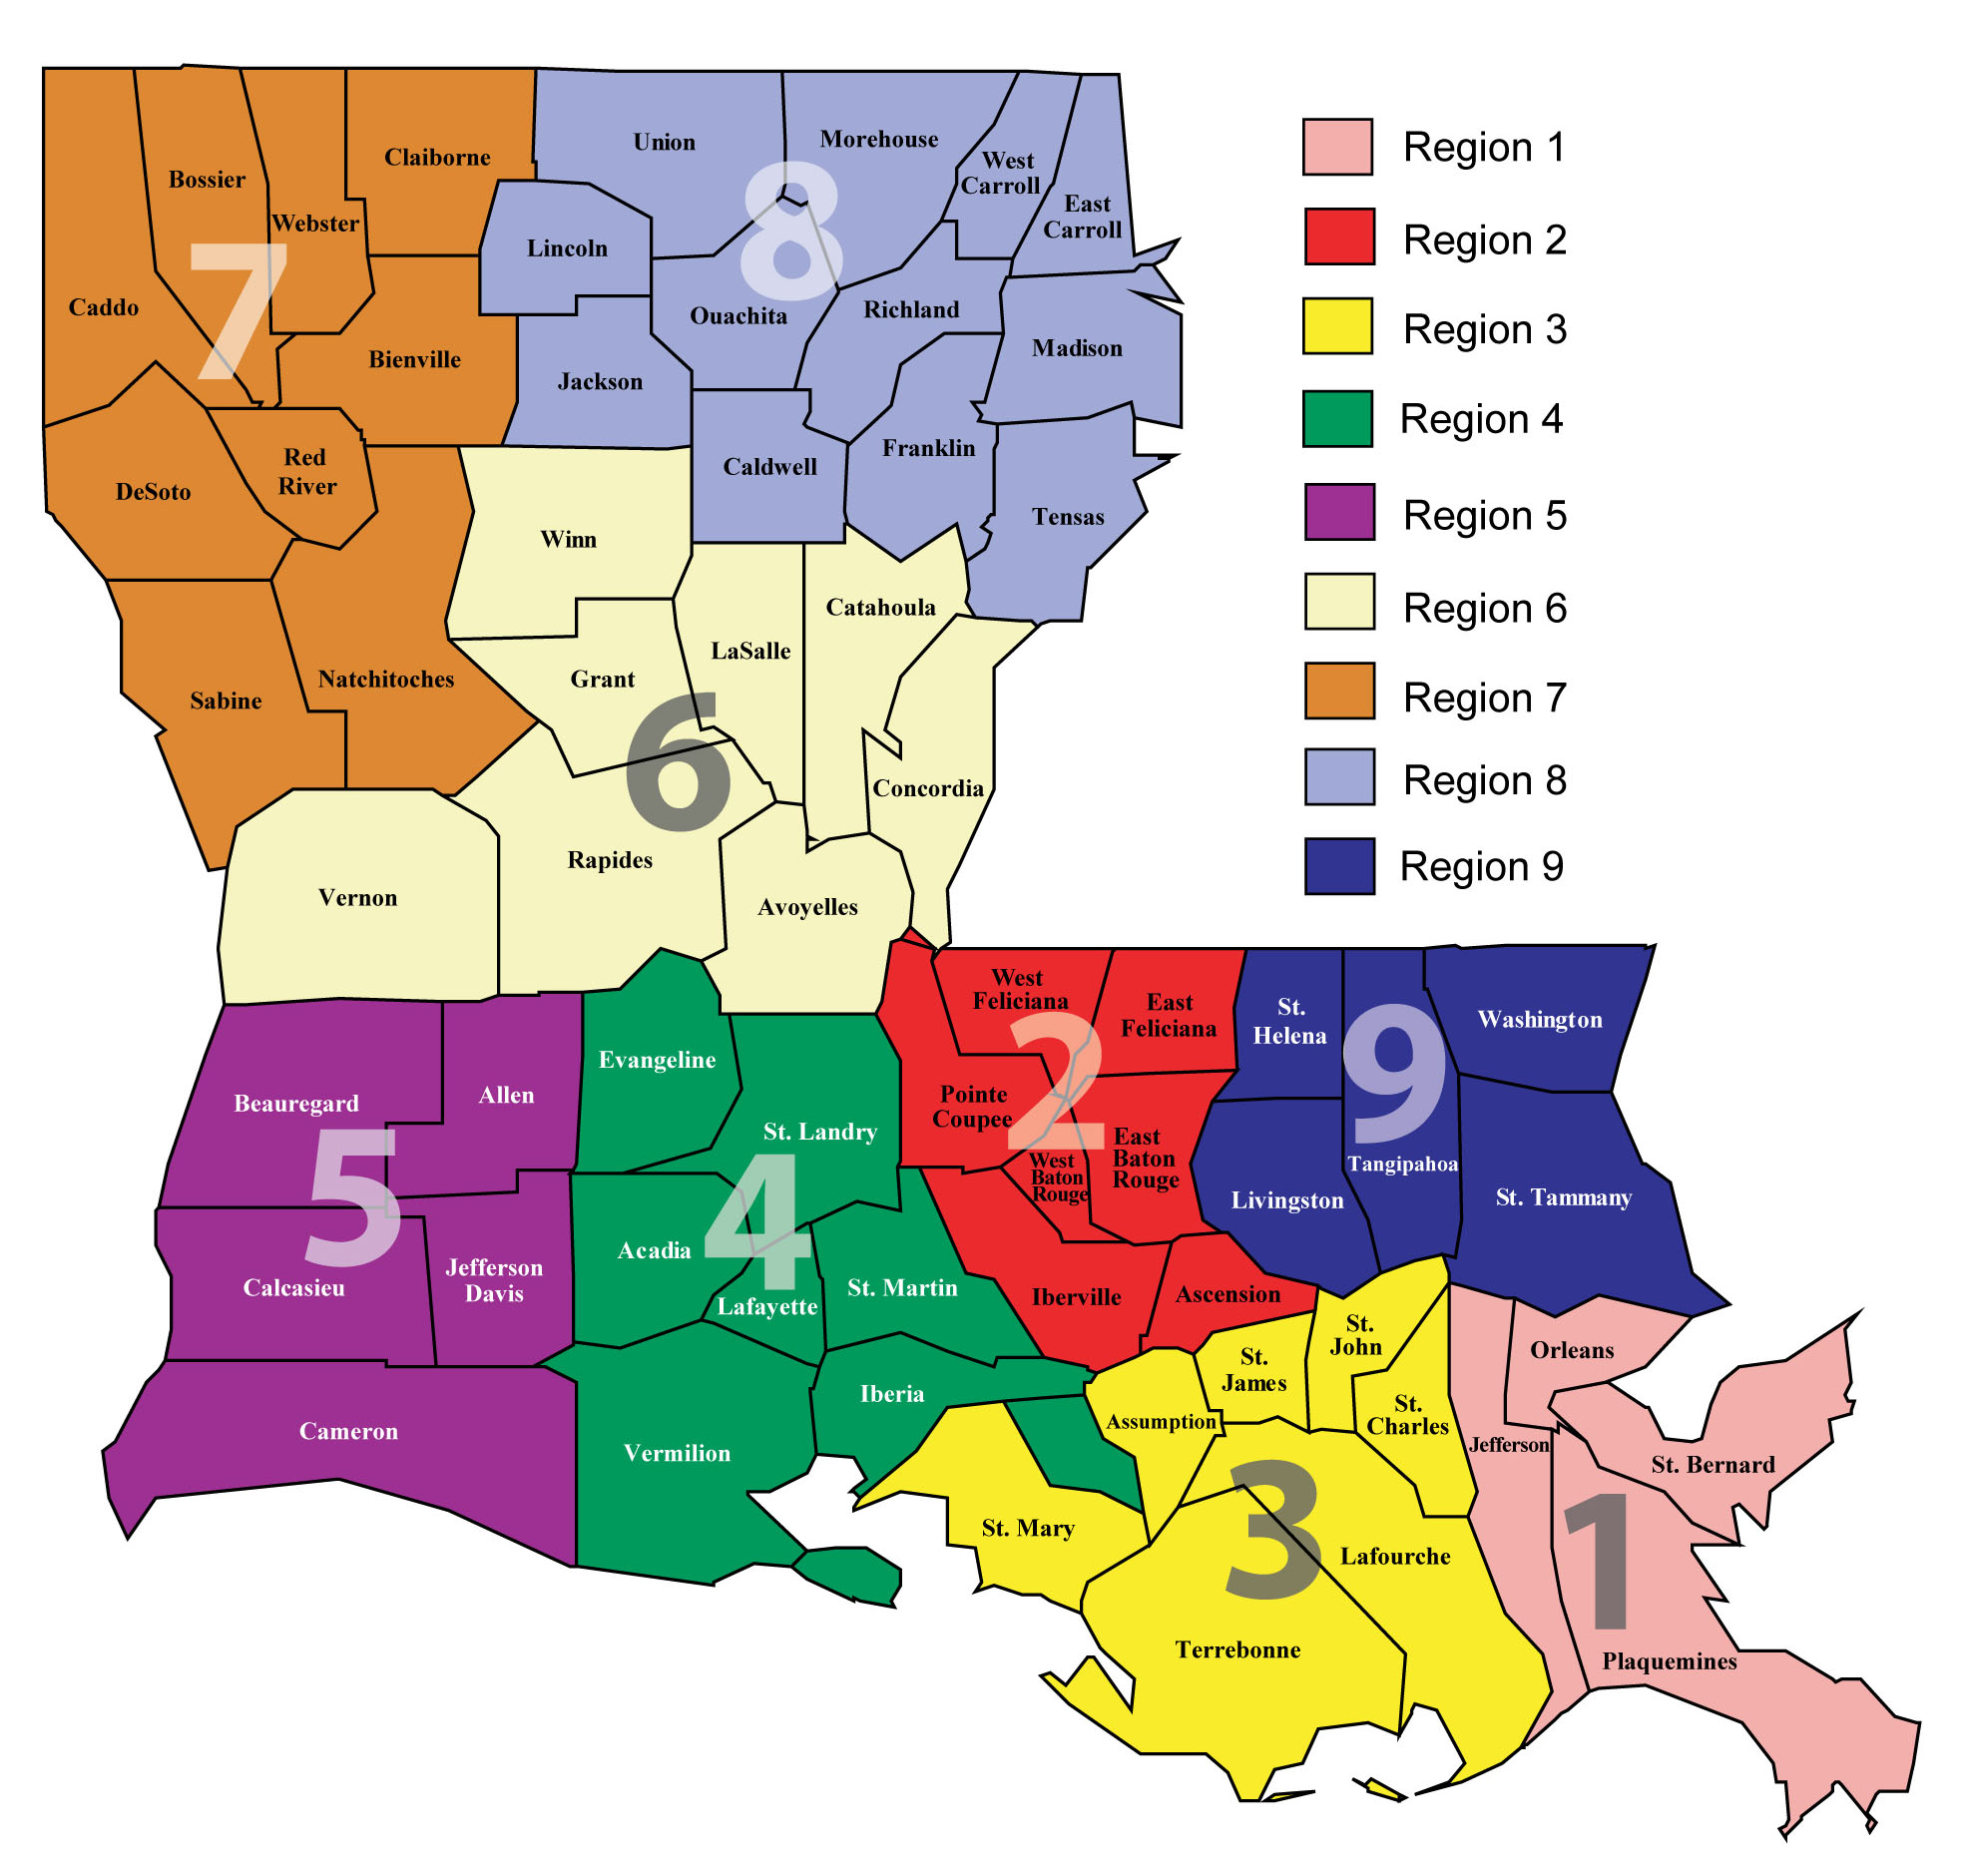 parishes in louisiana map About Ldh Department Of Health State Of Louisiana parishes in louisiana map